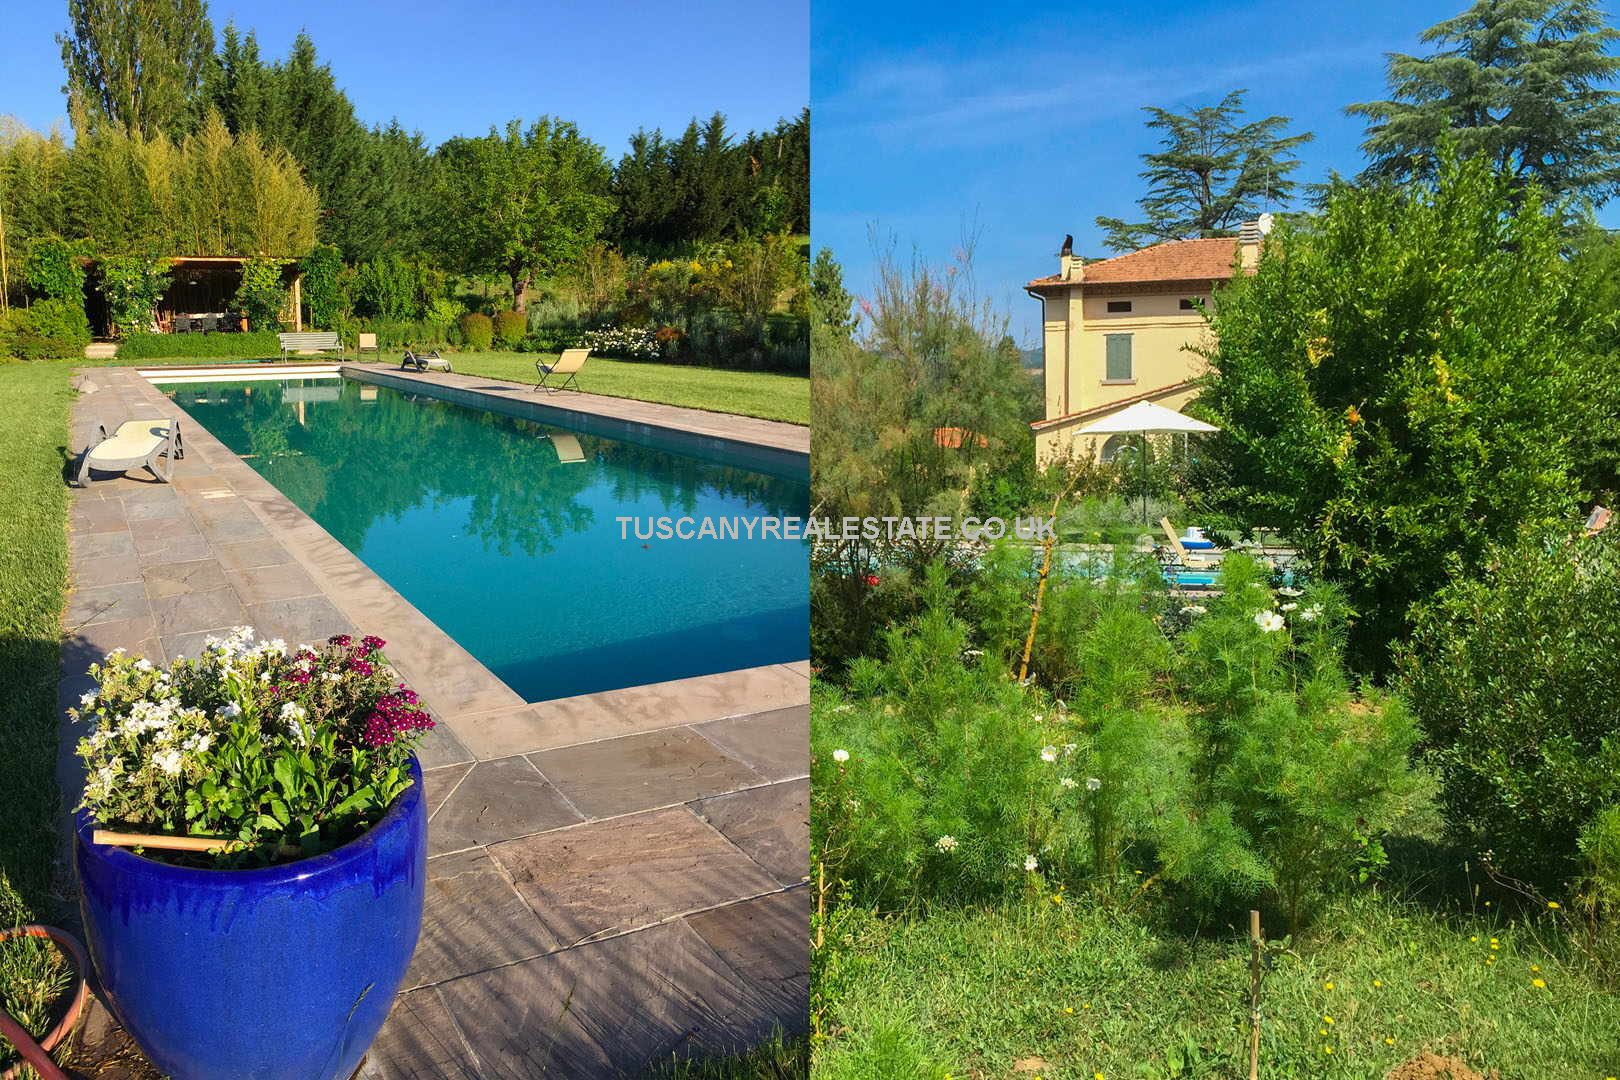 Lovely large villa, in the Liberty style, with pool and gardens located near to Umbertide in Umbria